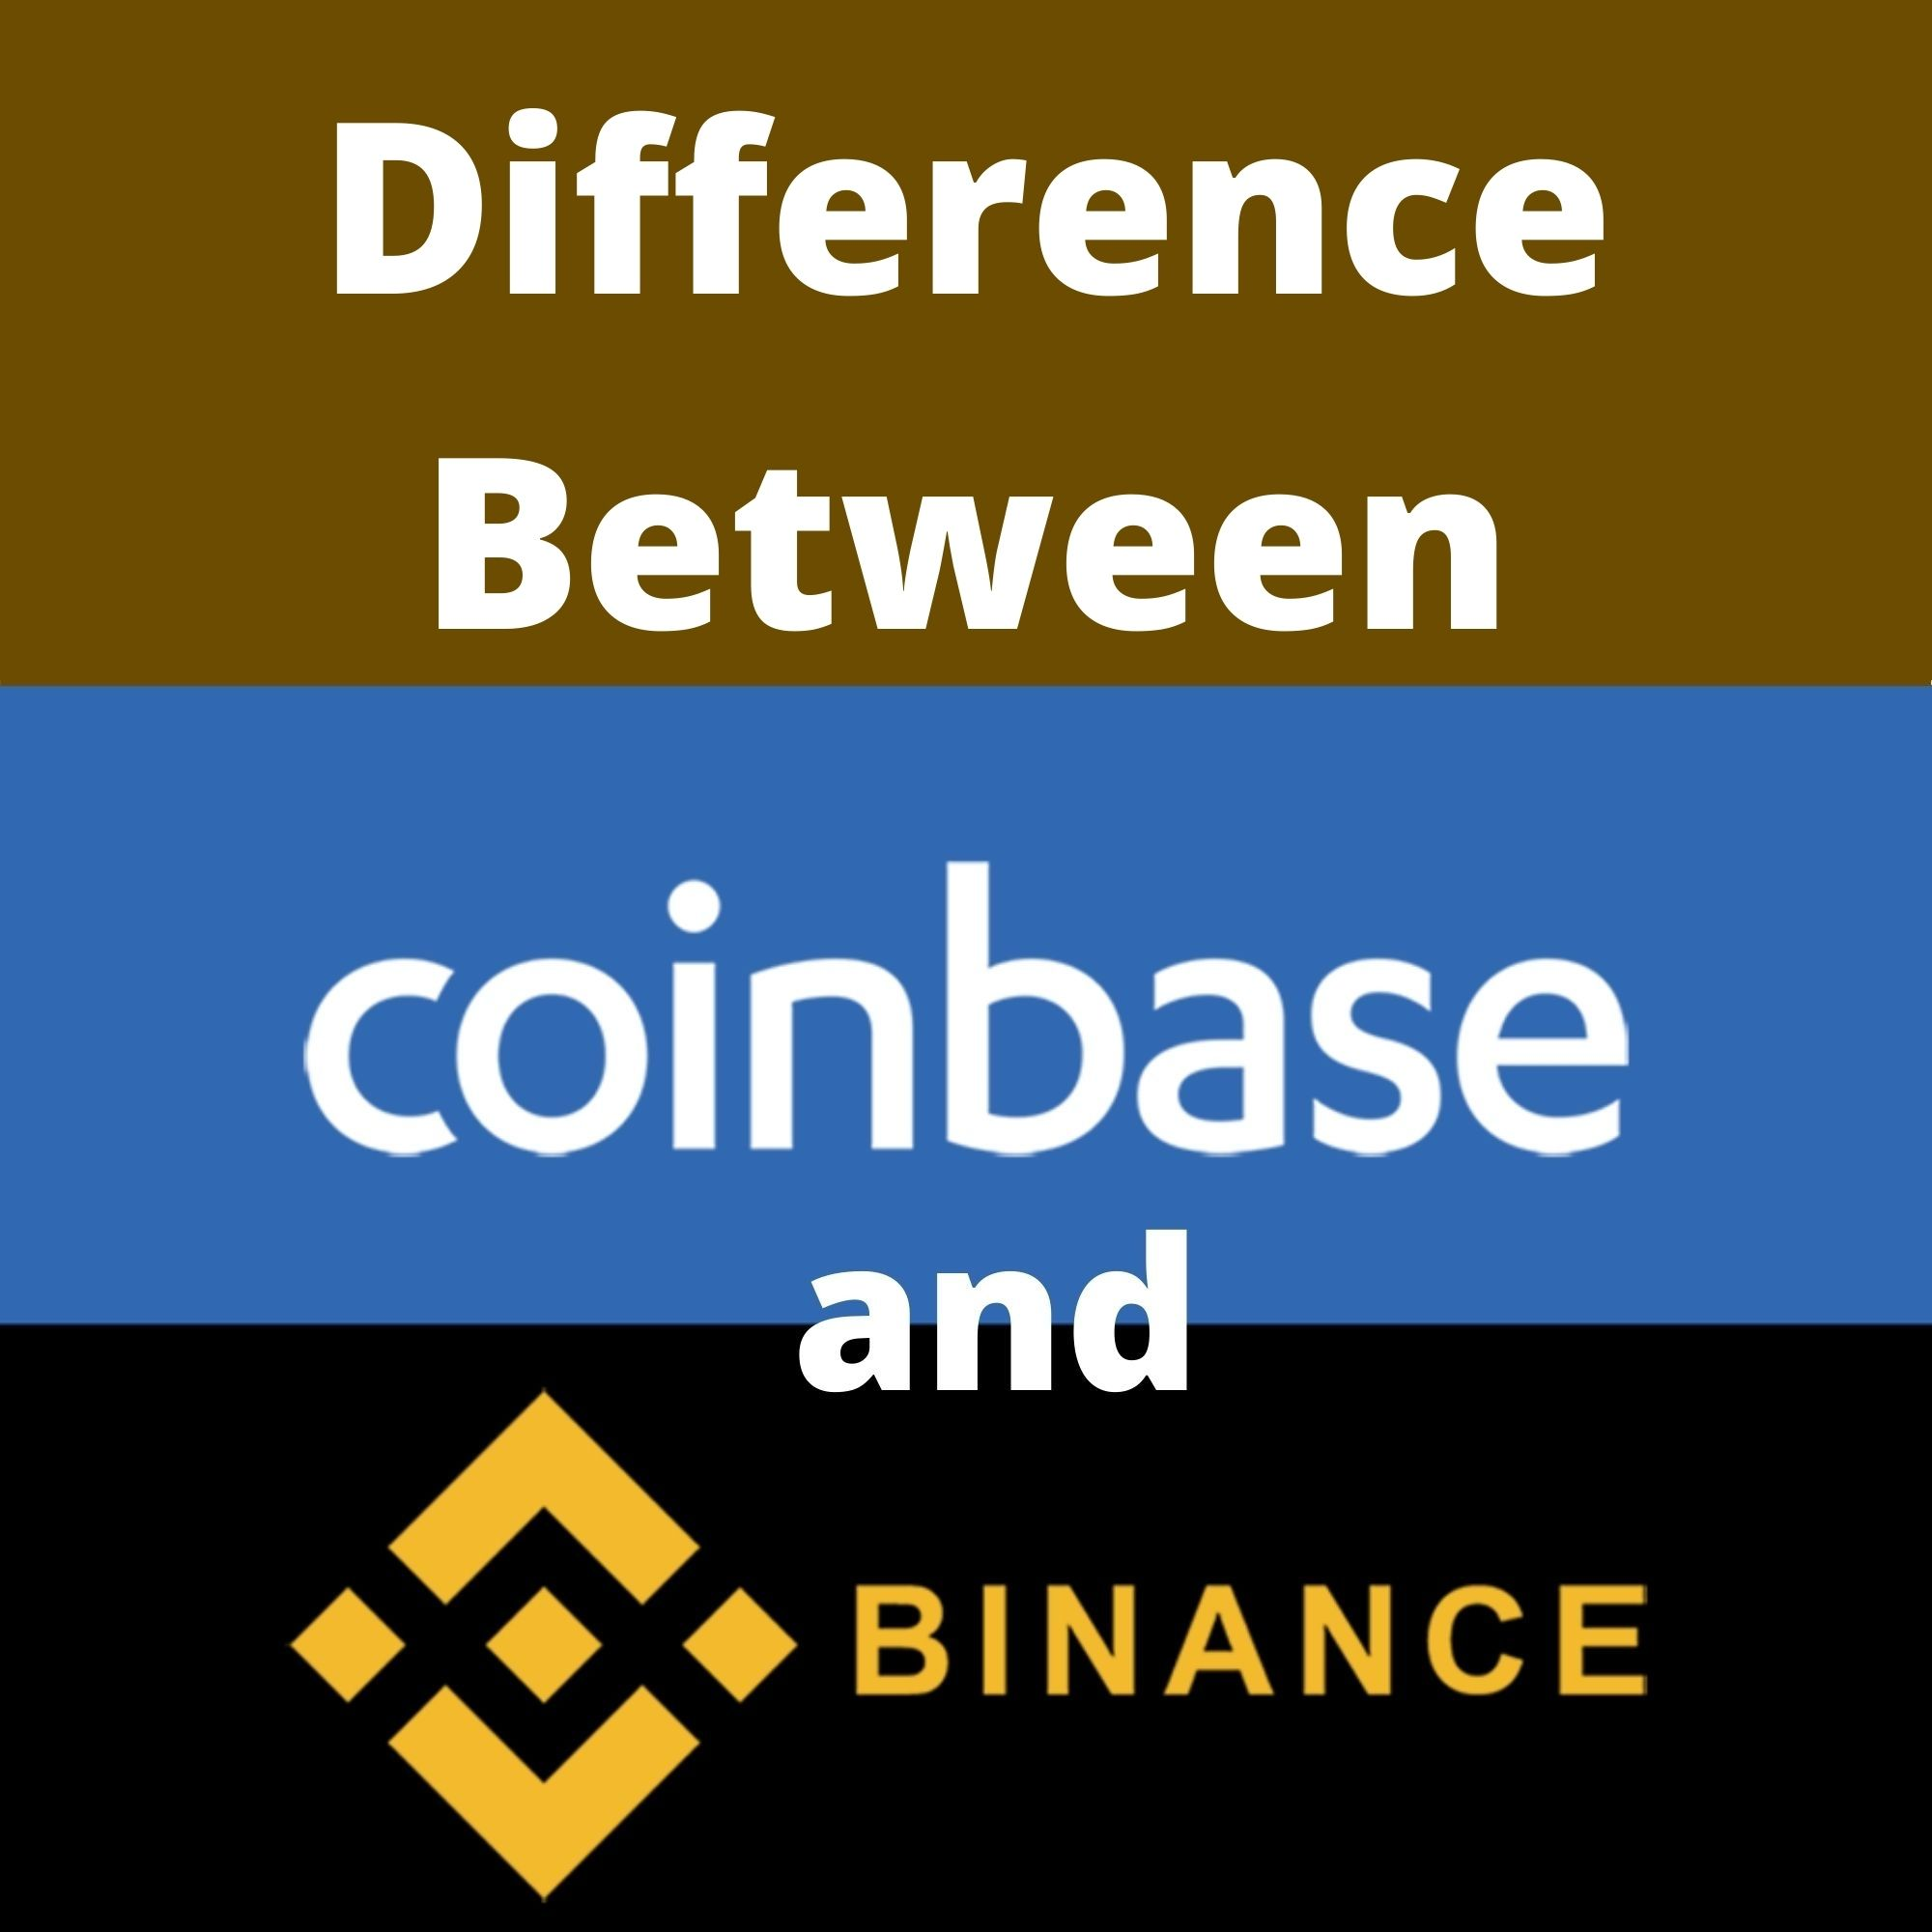 difference between coinbase and binance